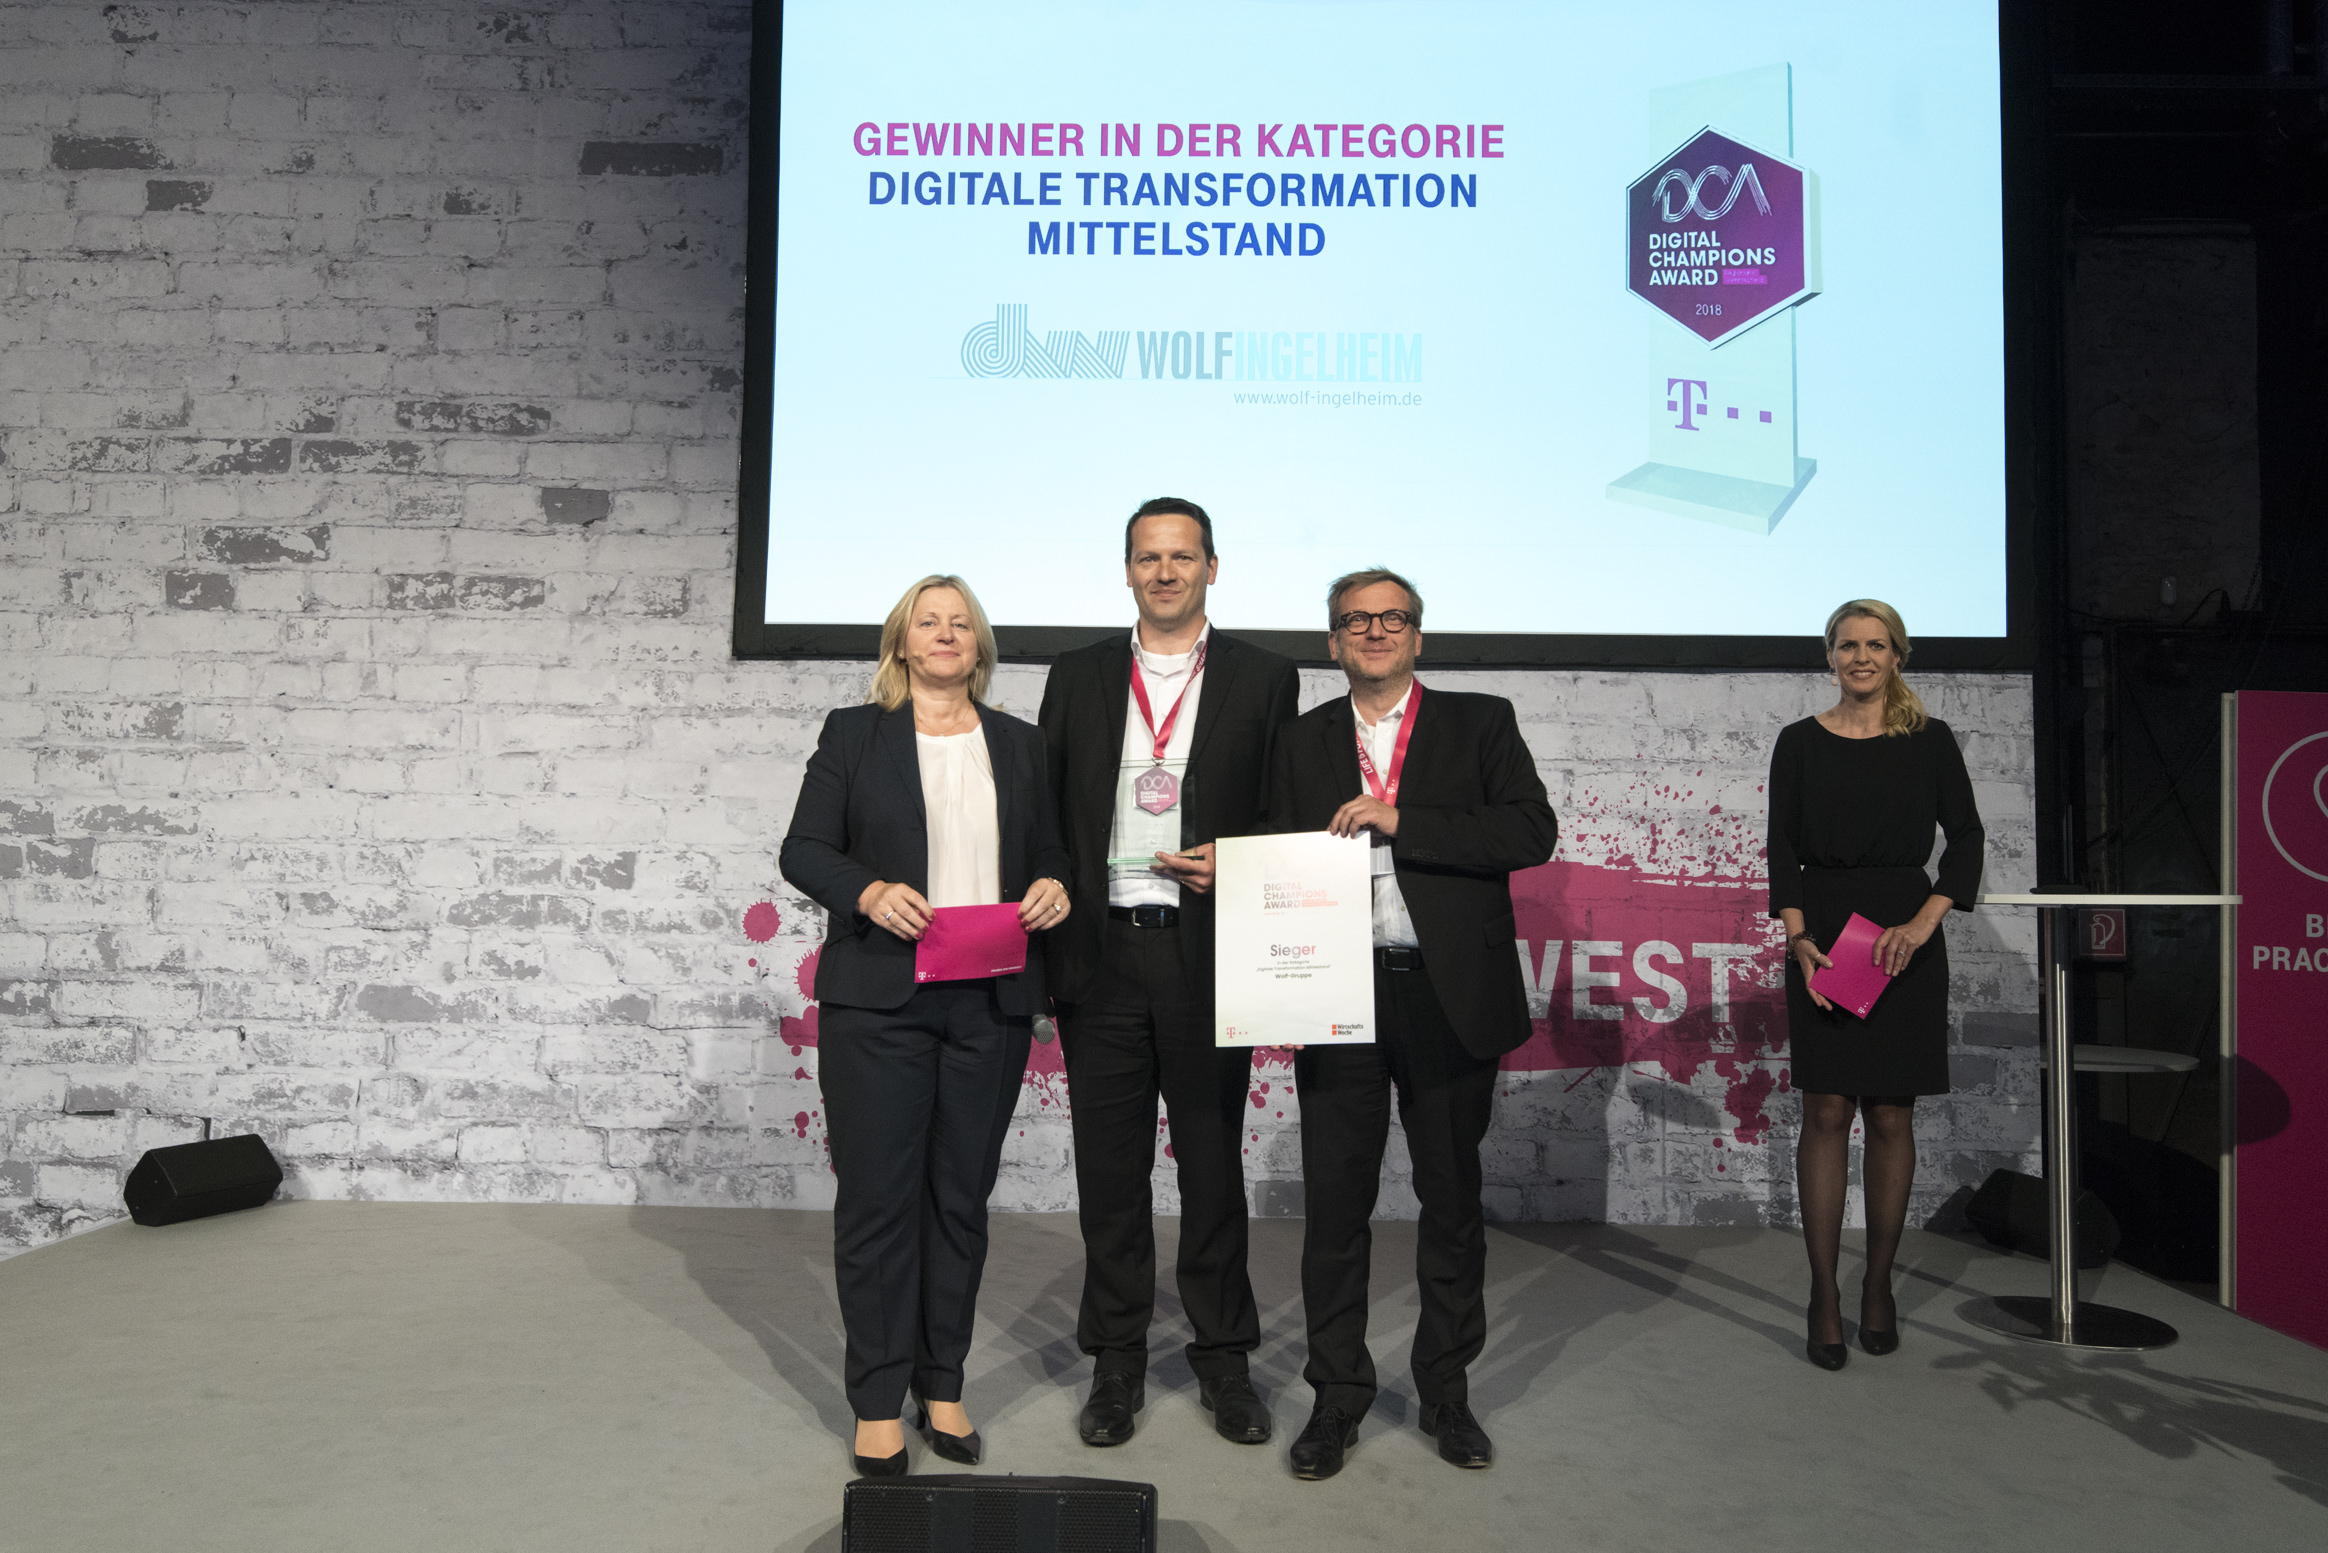 Deutsche Telekom Award 2018 Digitale Transformation Mittelstand Wolf-Ingelheim